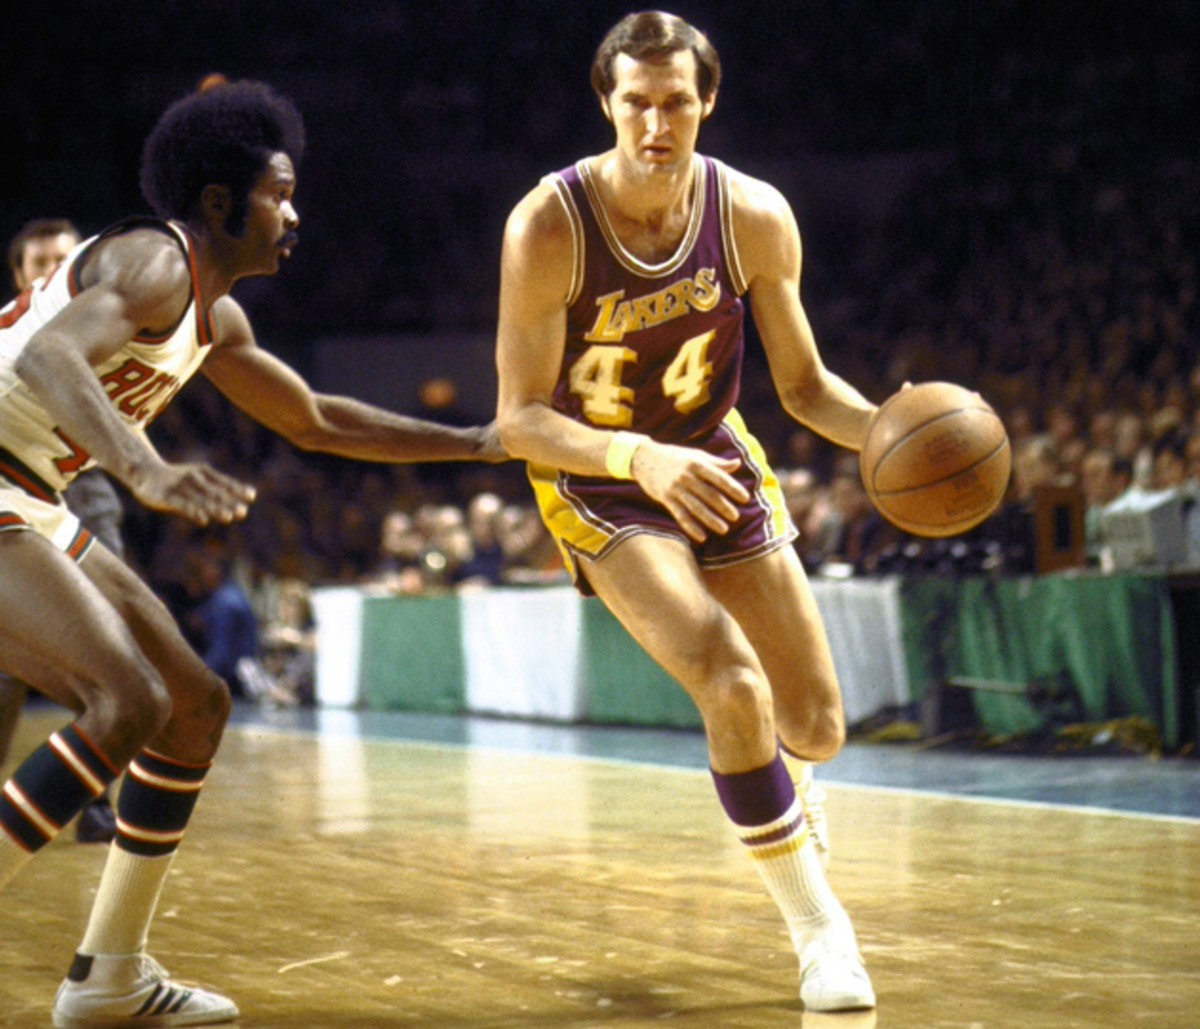 jerry-west-lakers-nba-hall-of-famer-1972-bucks.jpg